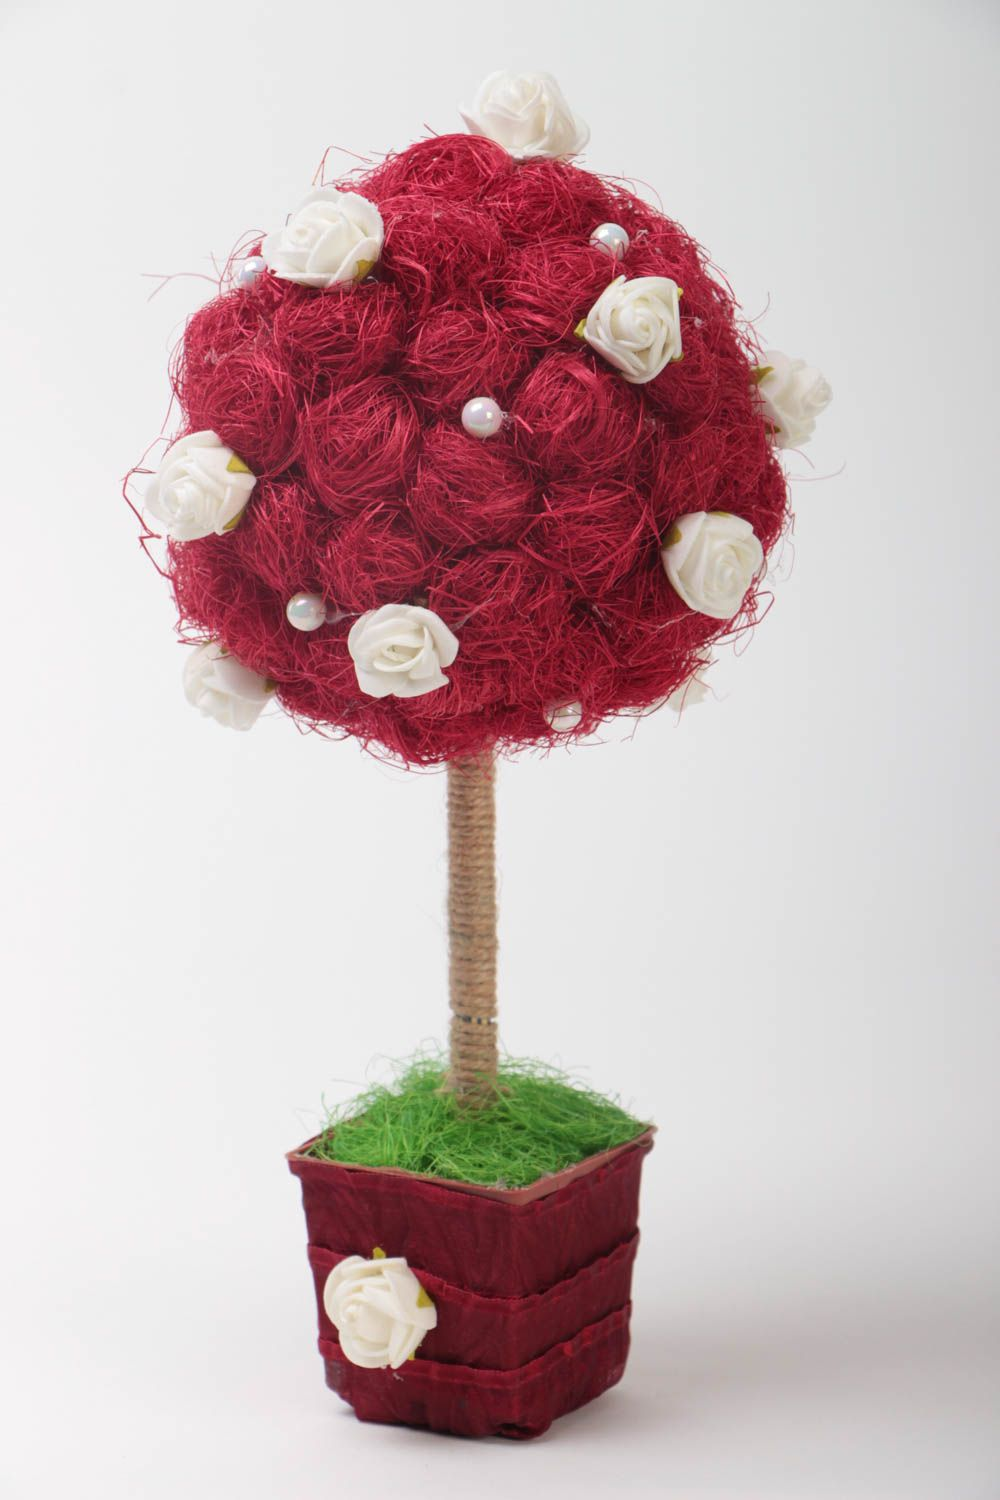 Unusual handcrafted topiary decorative tree of happiness home design gift ideas photo 2